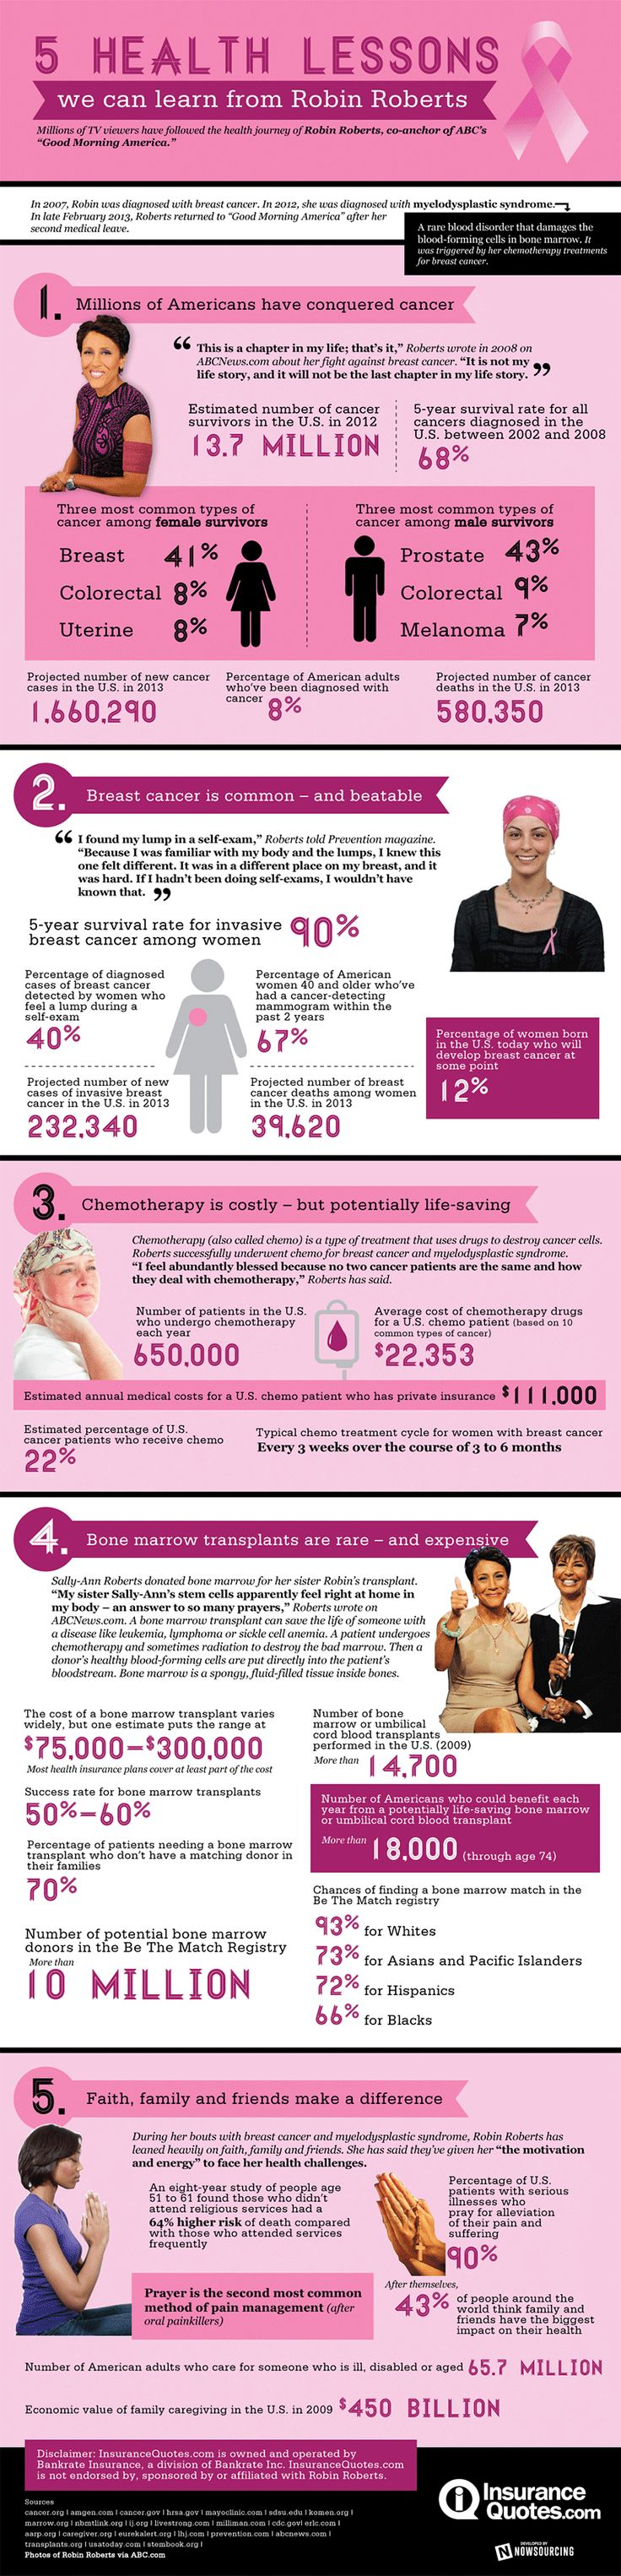 Robin Roberts Cancer #Infographic